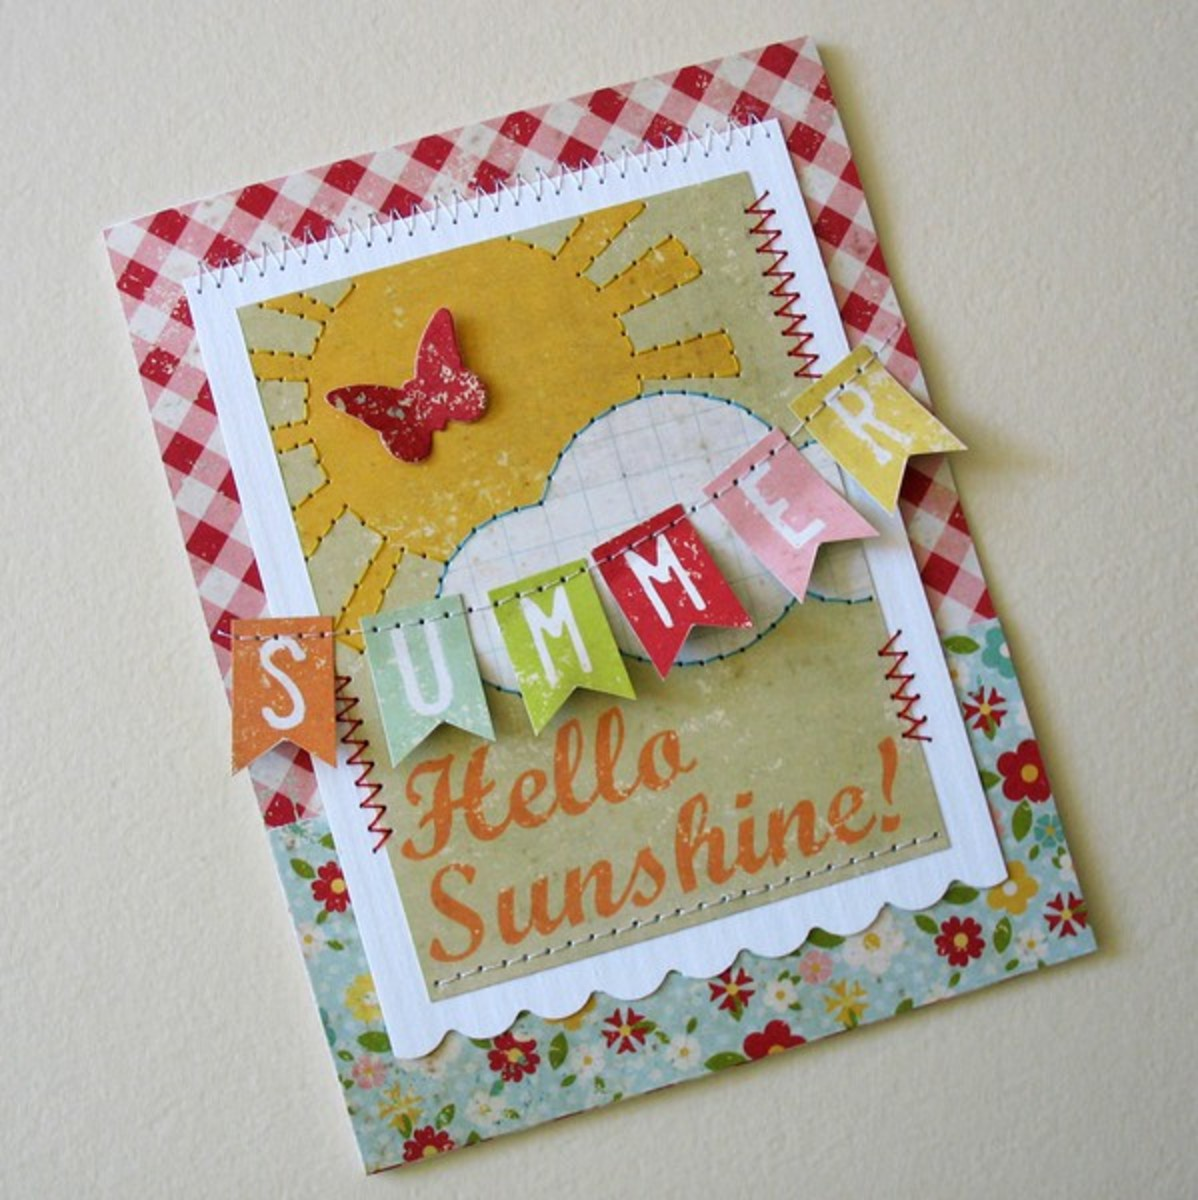 66c9a0820 Summer Greeting Cards  Homemade Card Ideas to Make